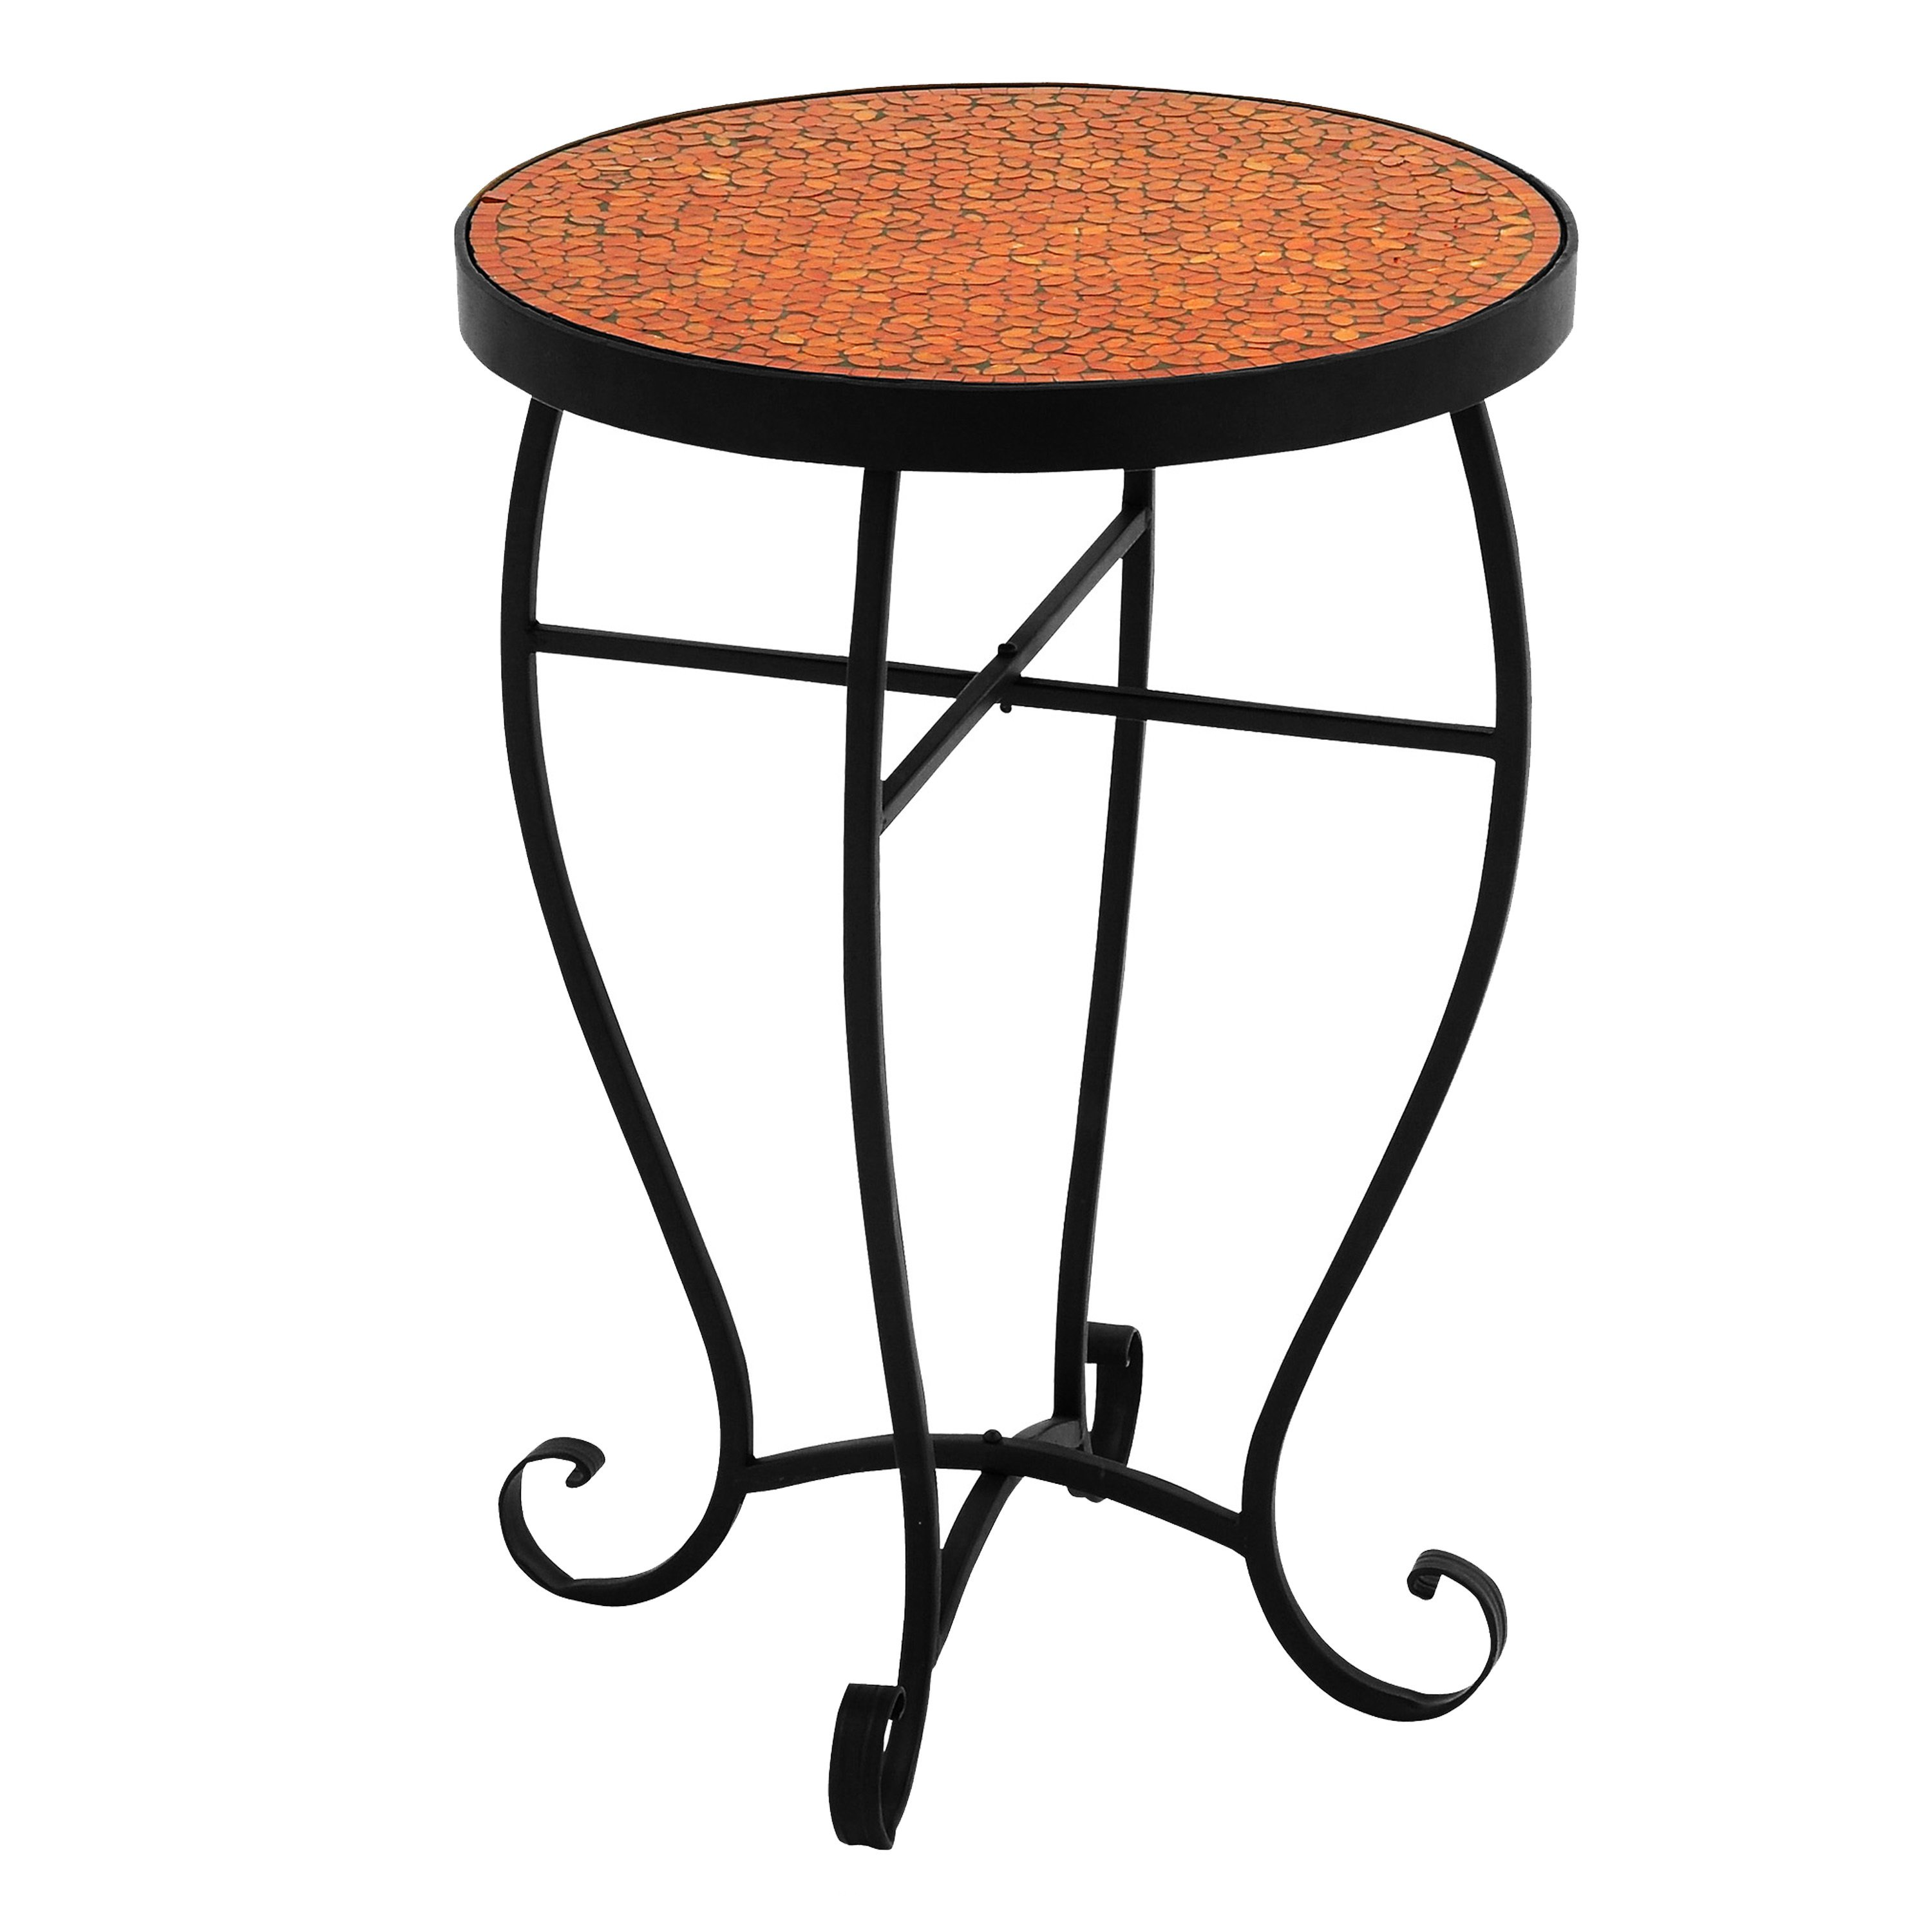 moroccan mosaic orange red round side accent table free shipping today cocktail tables and end cement dining room blue white porcelain lamp small living with storage short narrow